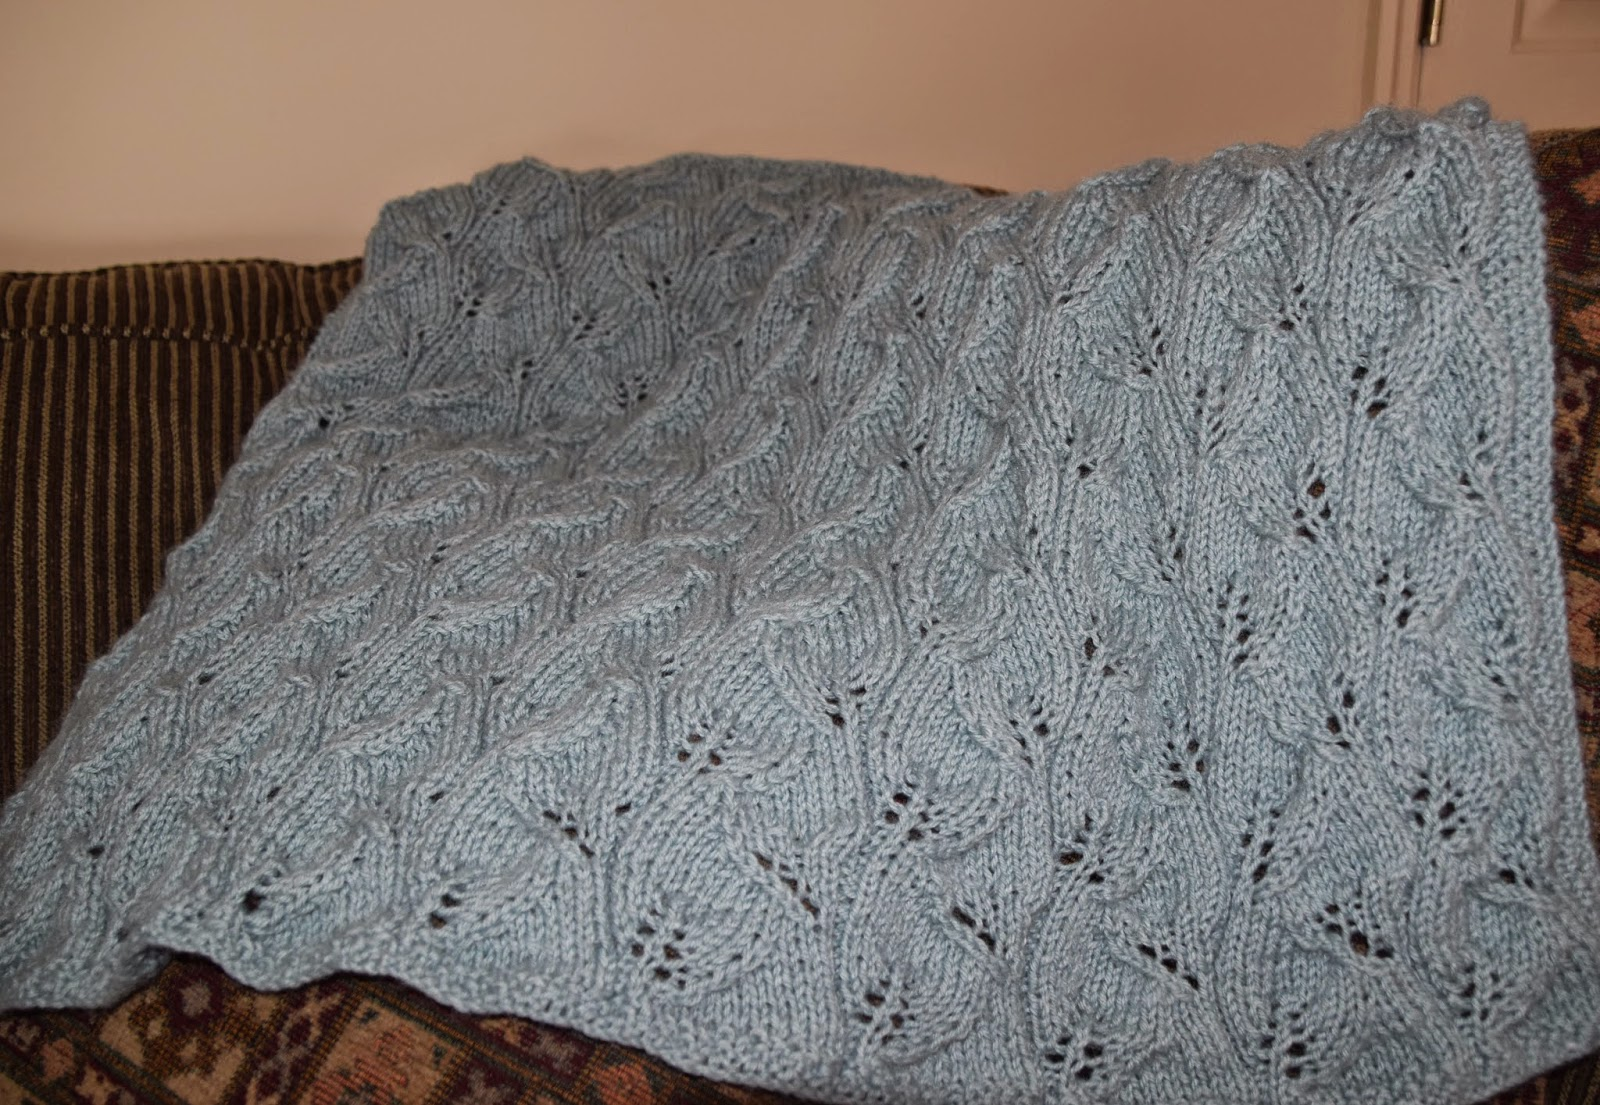 Nonna Rose Creates and Cooks: Baby Leaf Blanket is Complete